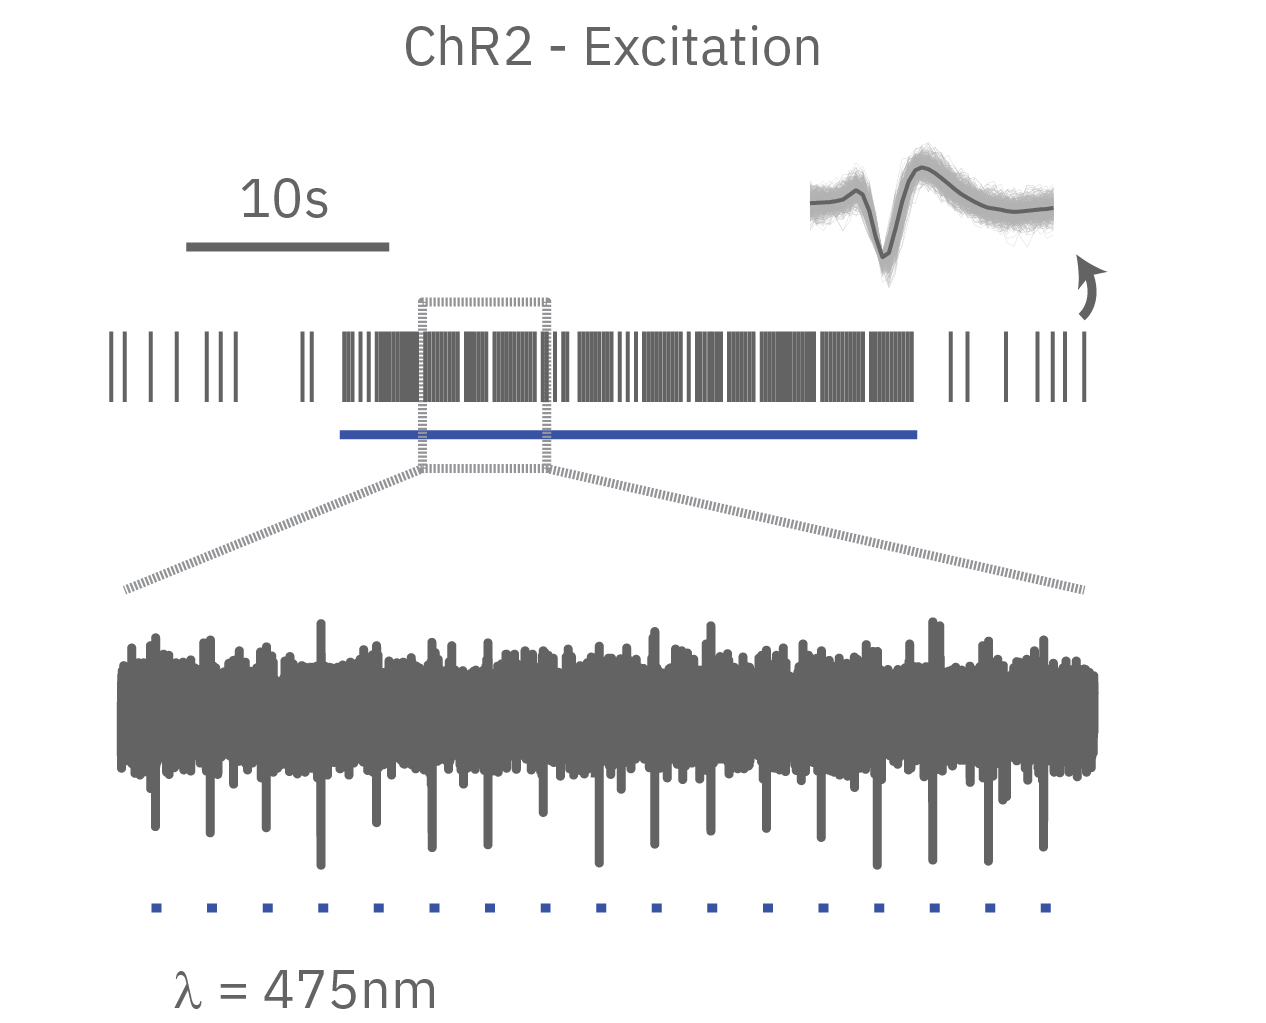 ChR2 Neural excitation